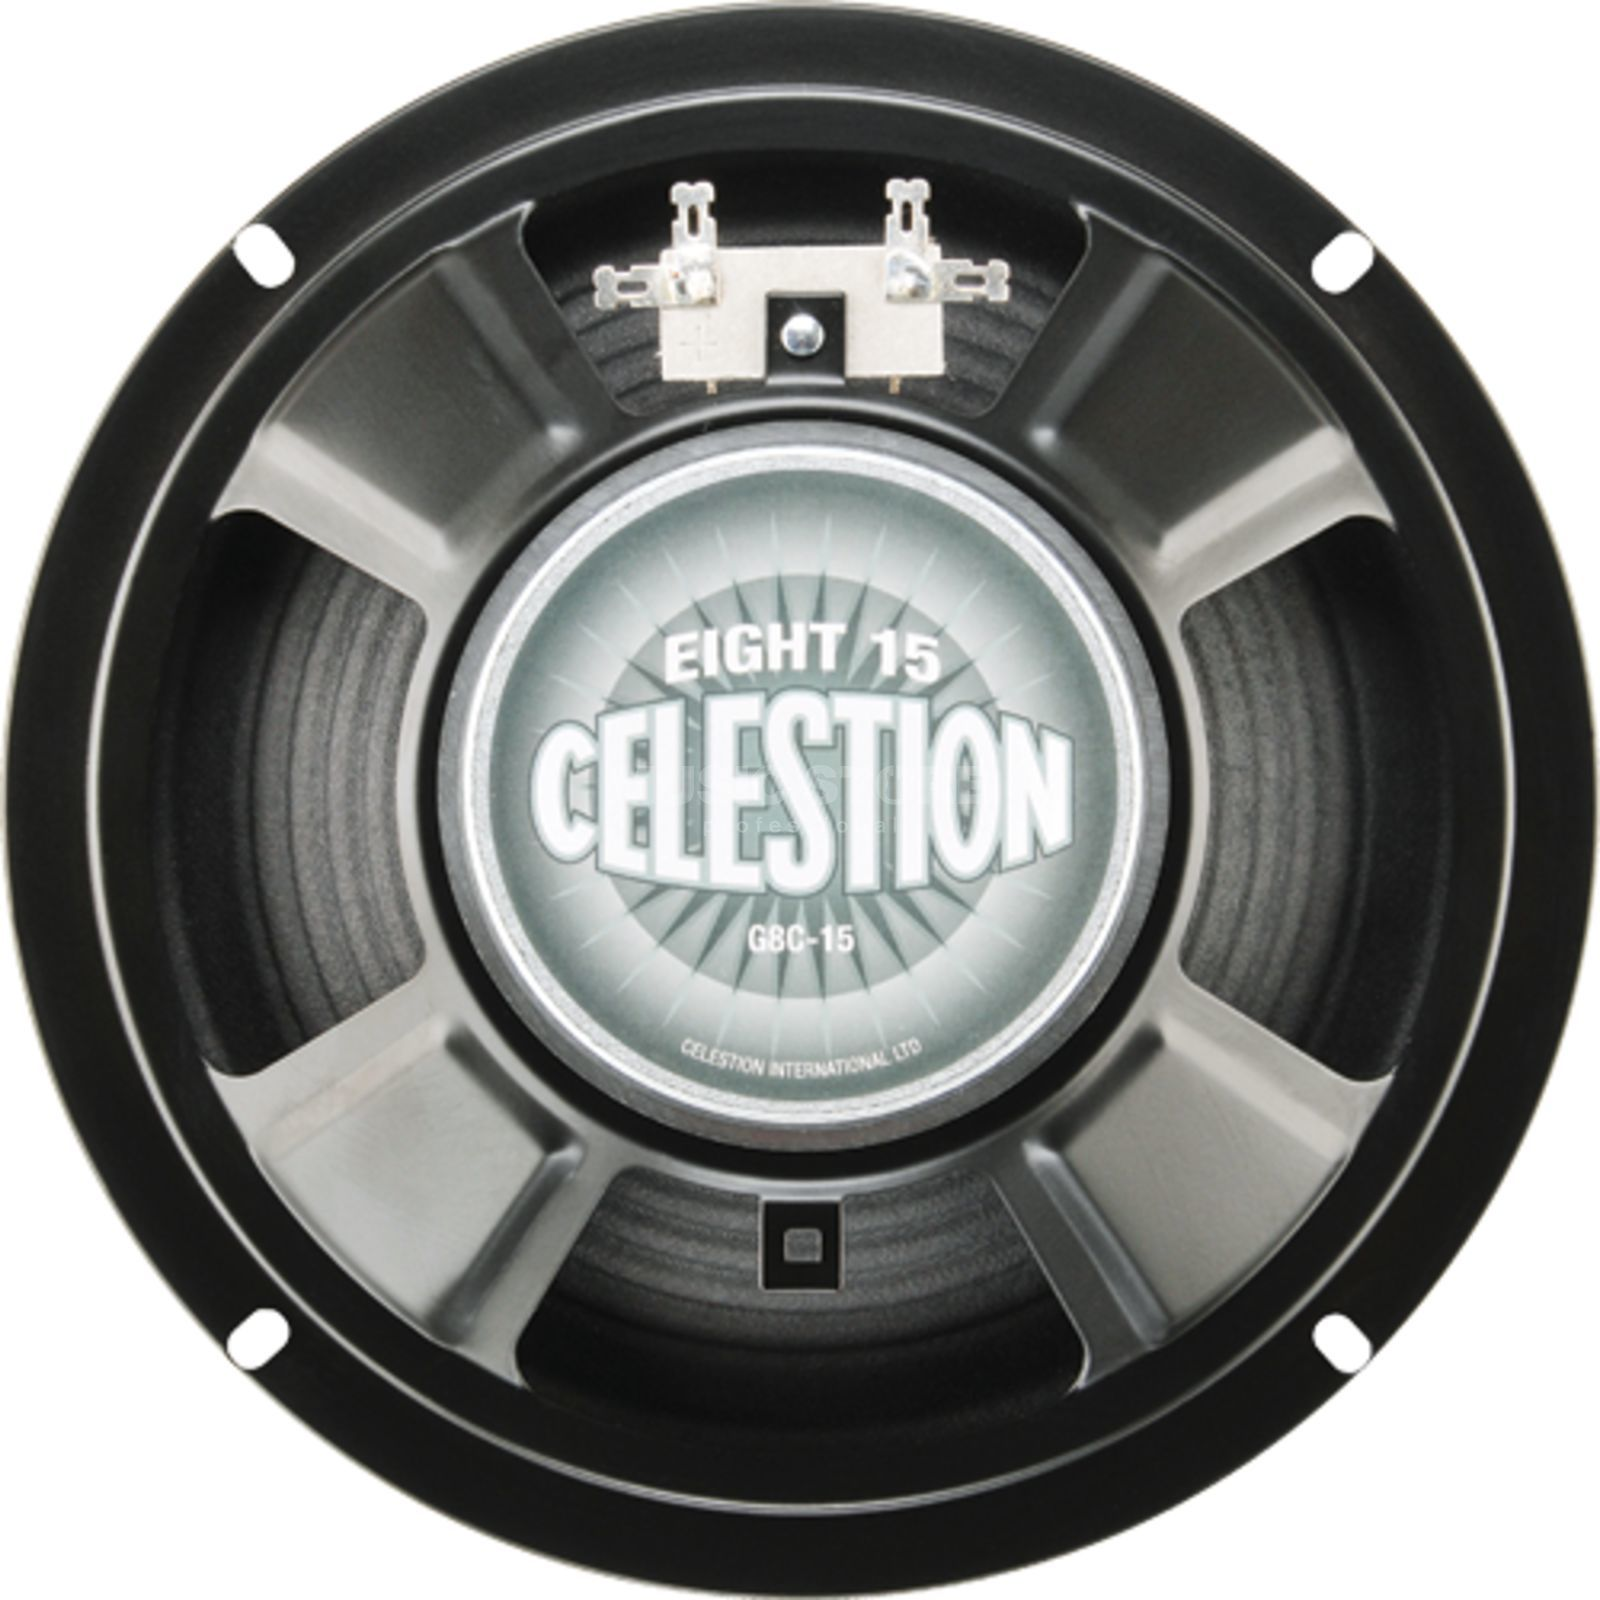 "Celestion Eight 15 8"" Speaker 16 Ohm Produktbillede"